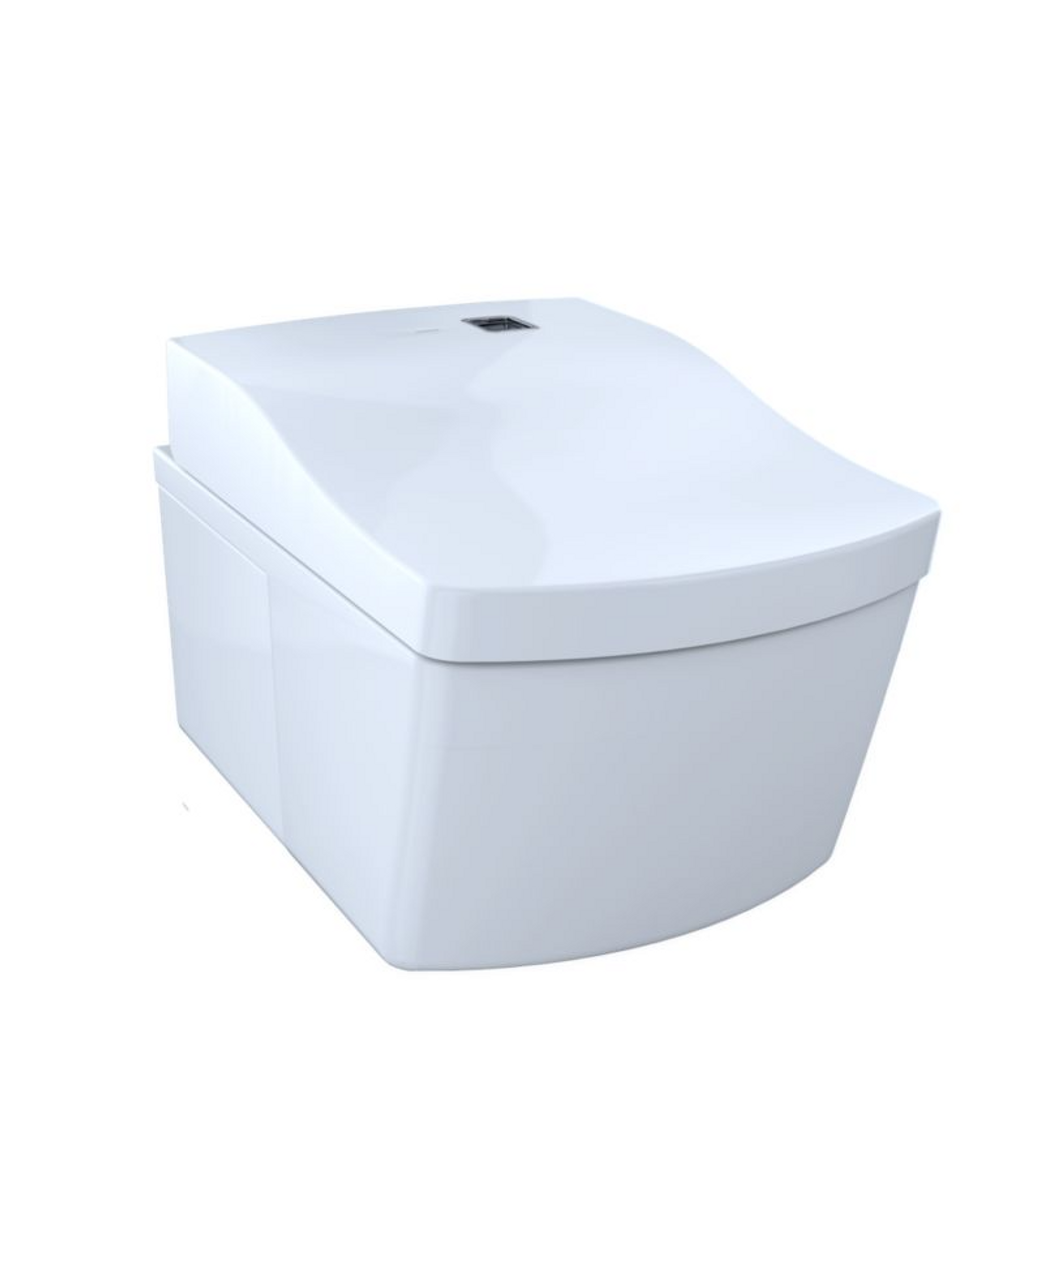 TOTO Neorest AC Wall Hung - Dual Flush - One Piece Toilet and Bidet ...